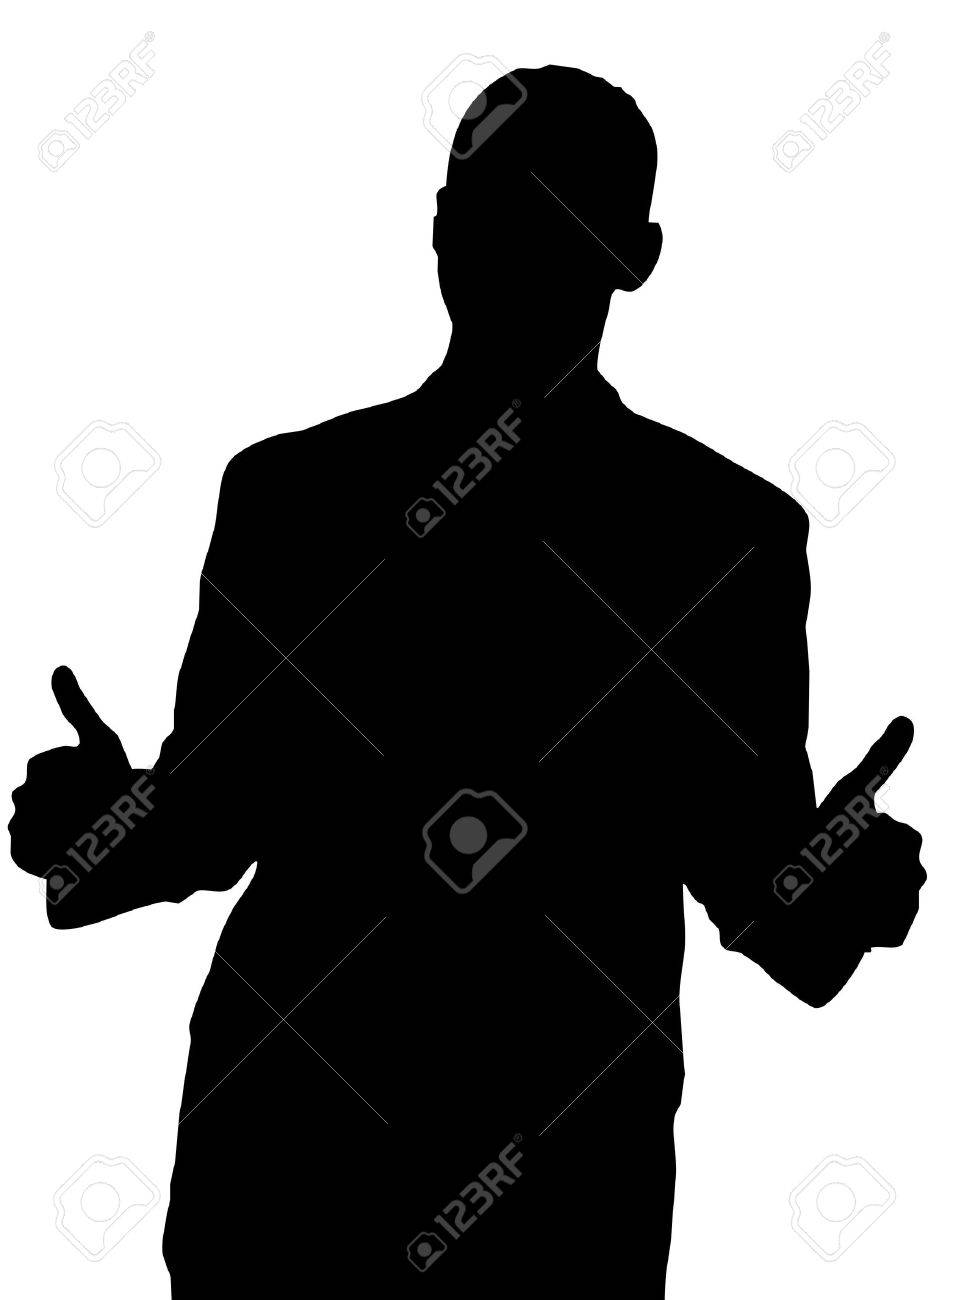 Male Silhouette with Two Thumbs Up isolated on a white background. Stock Photo - 5986775